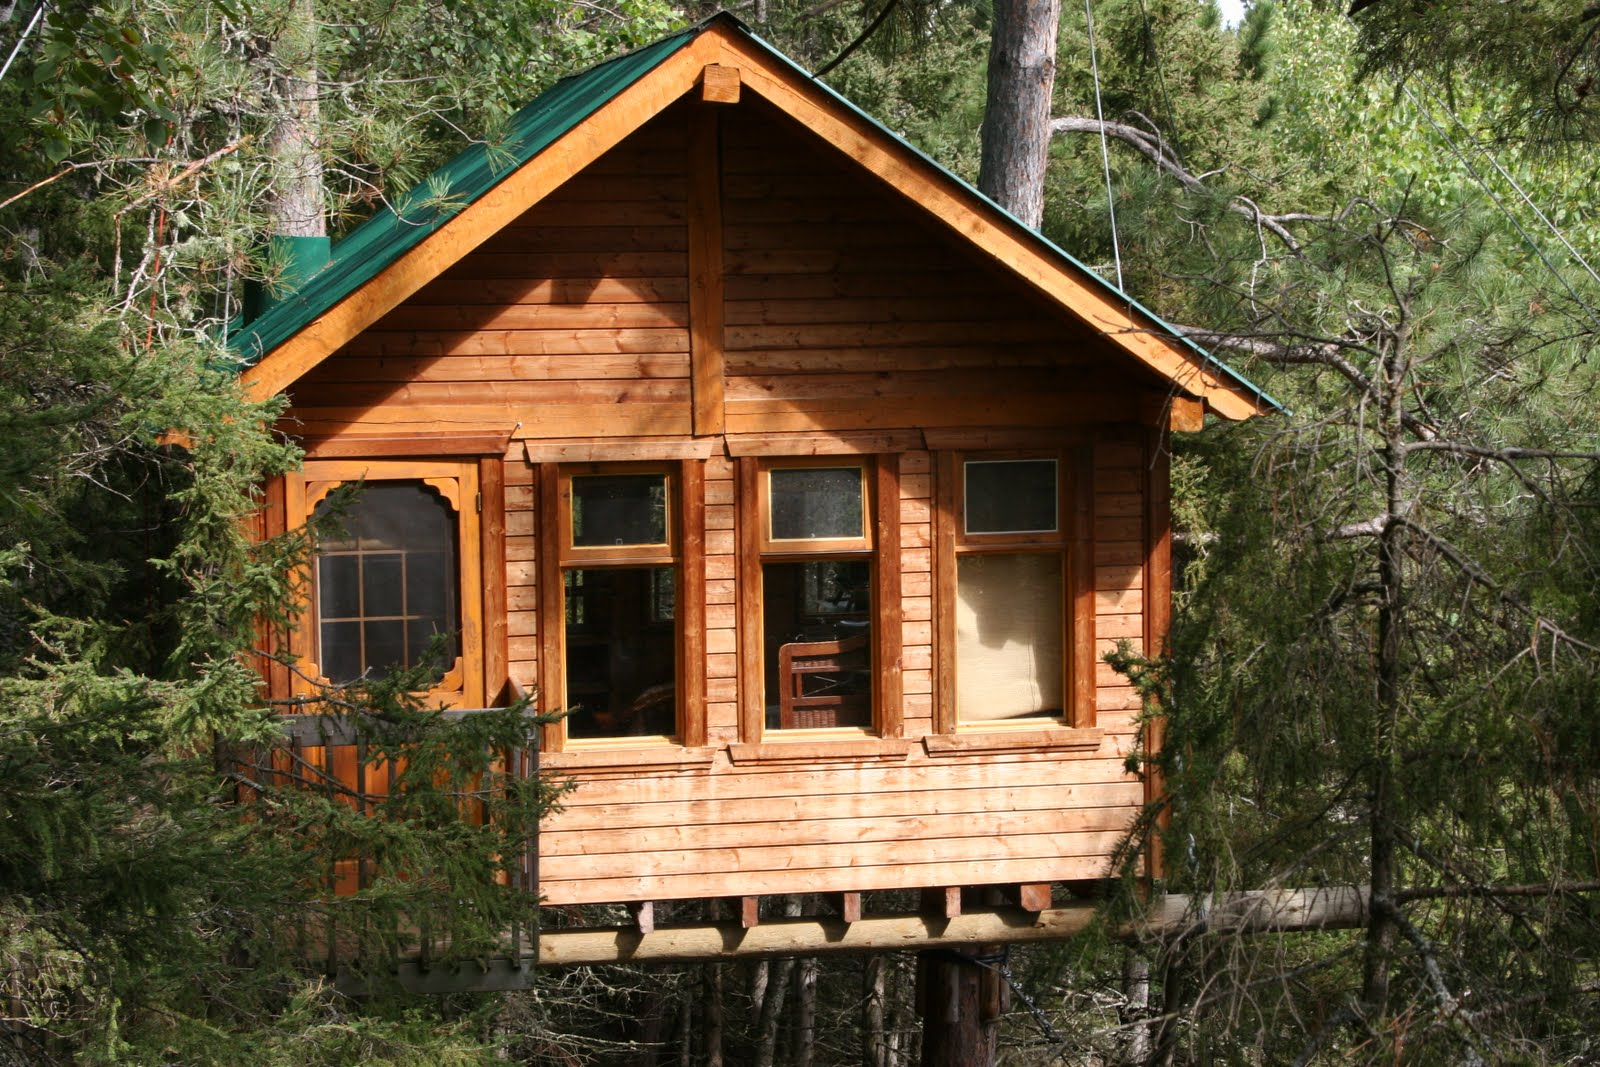 Florida spa girls glamping for Three tree treehouse plans